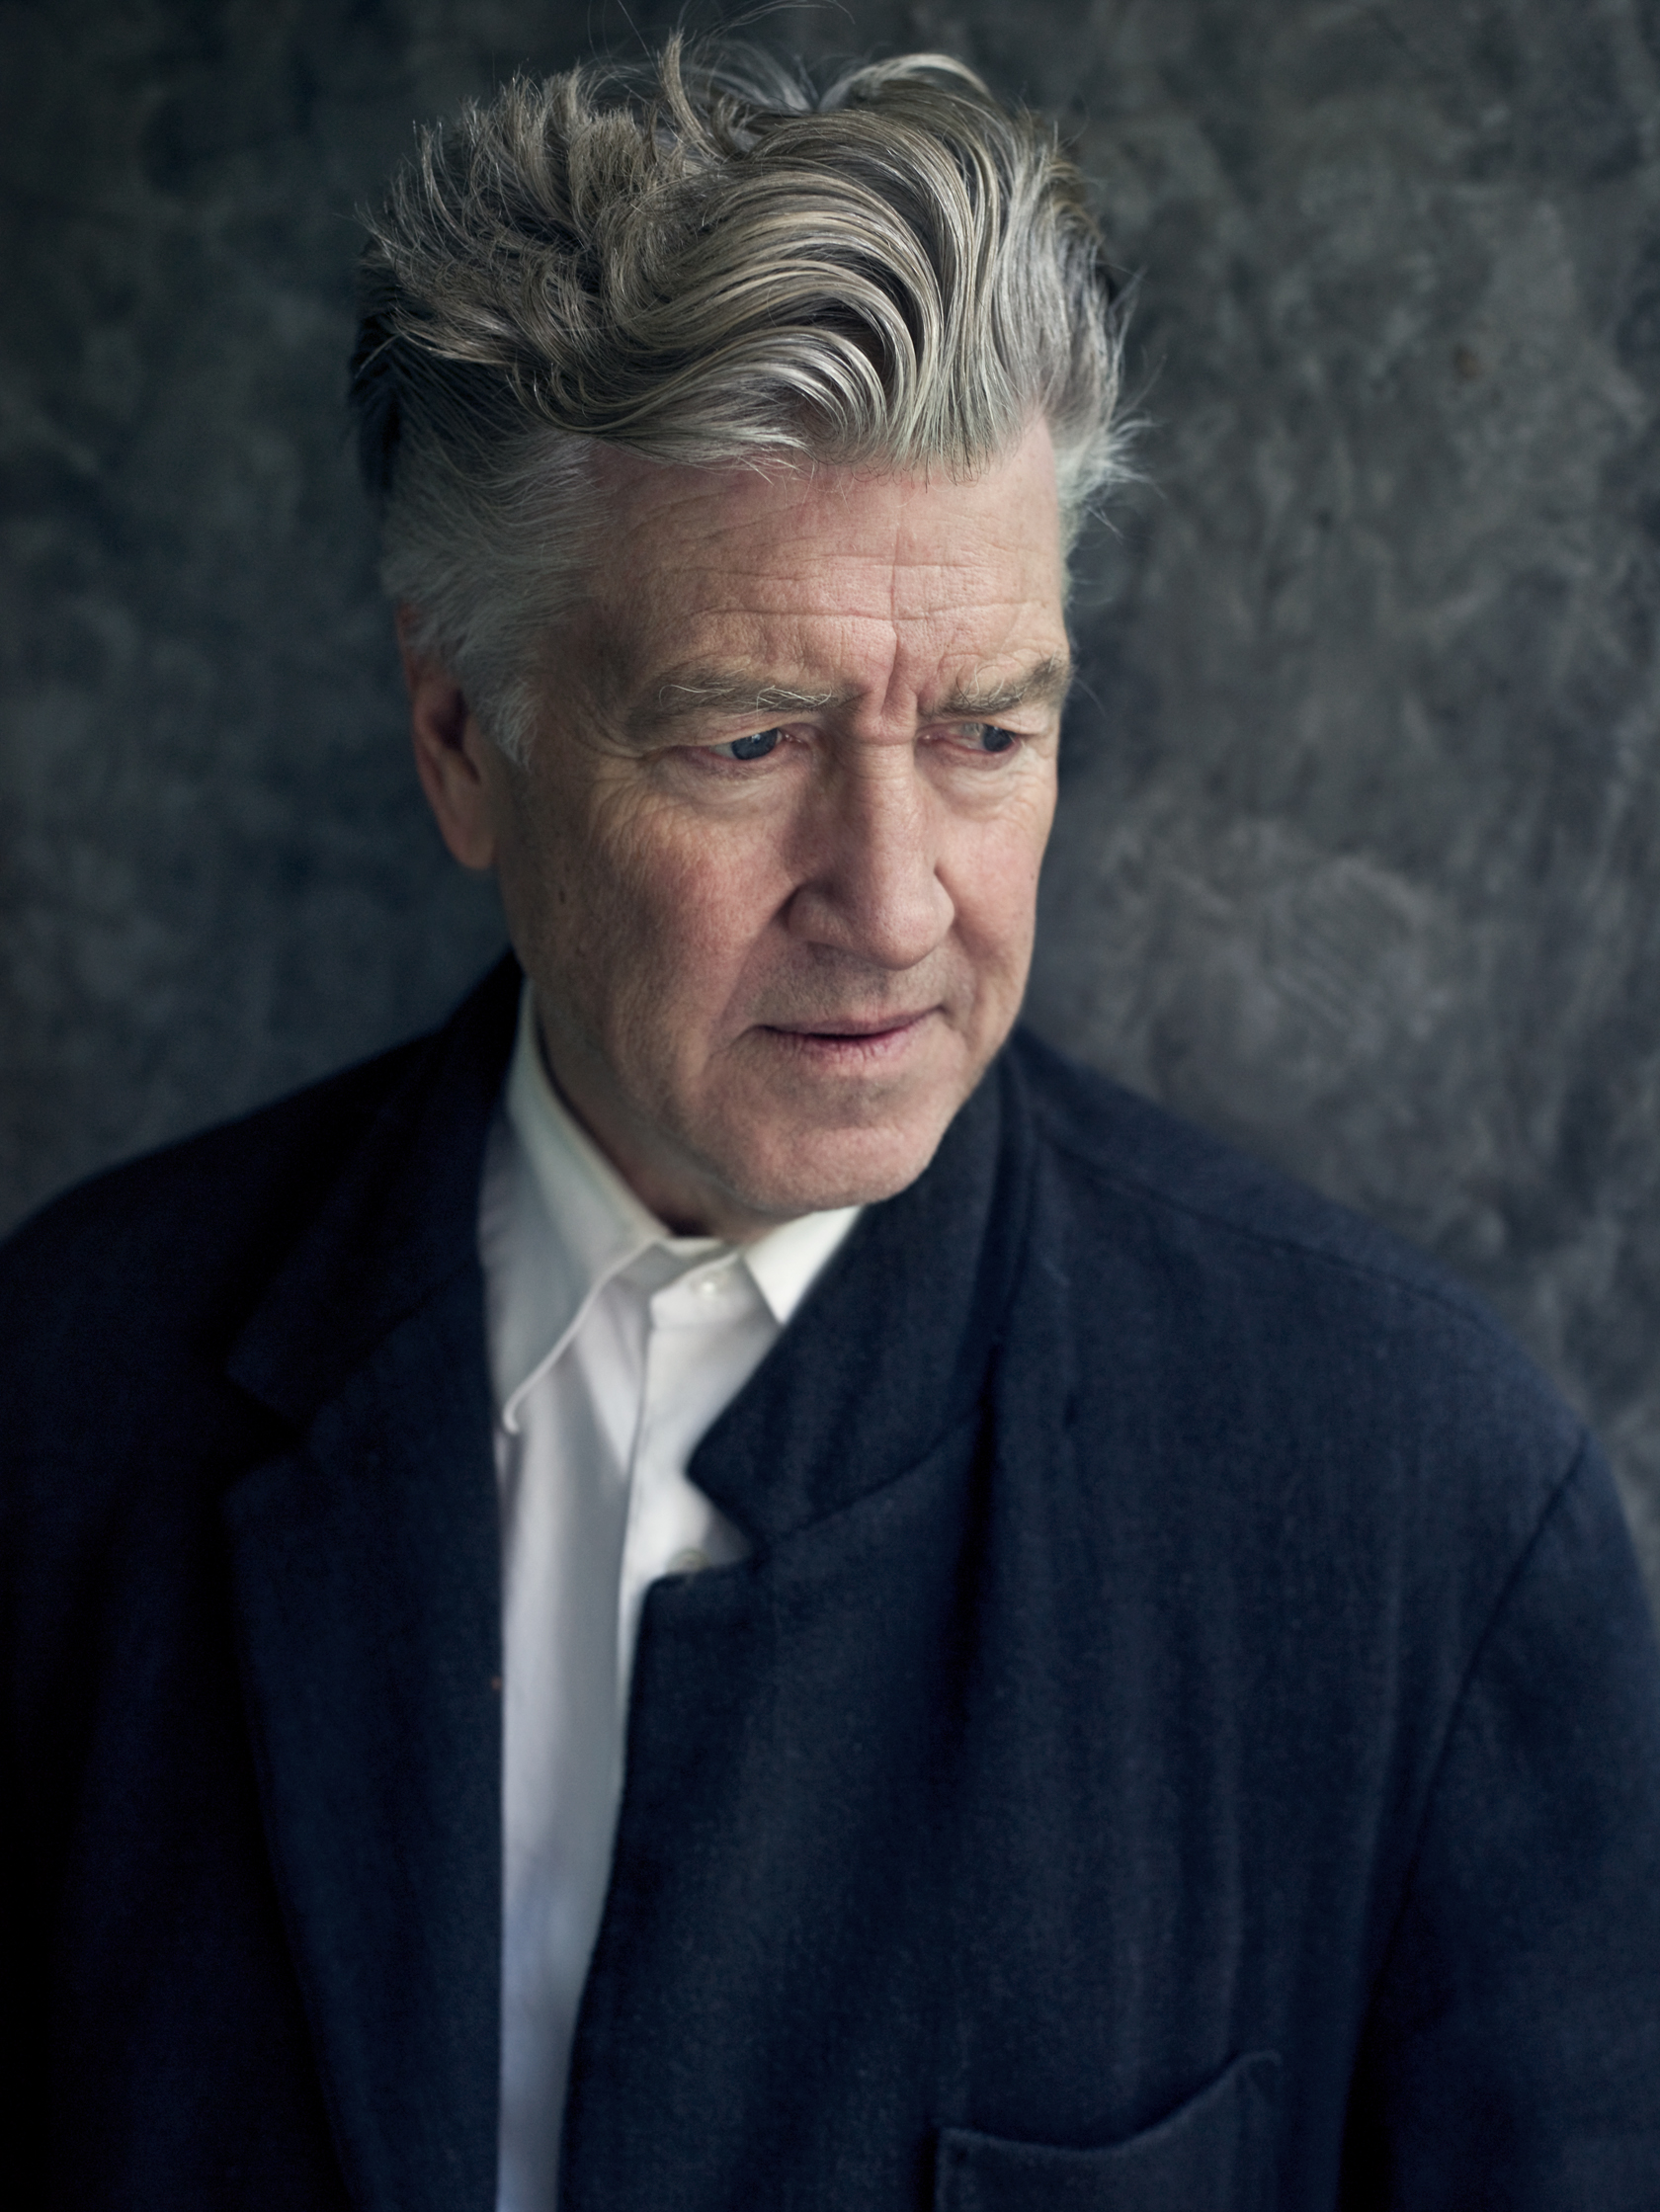 Meditation Creativity Peace: A Documentary of David Lynch's 16 Country Tour